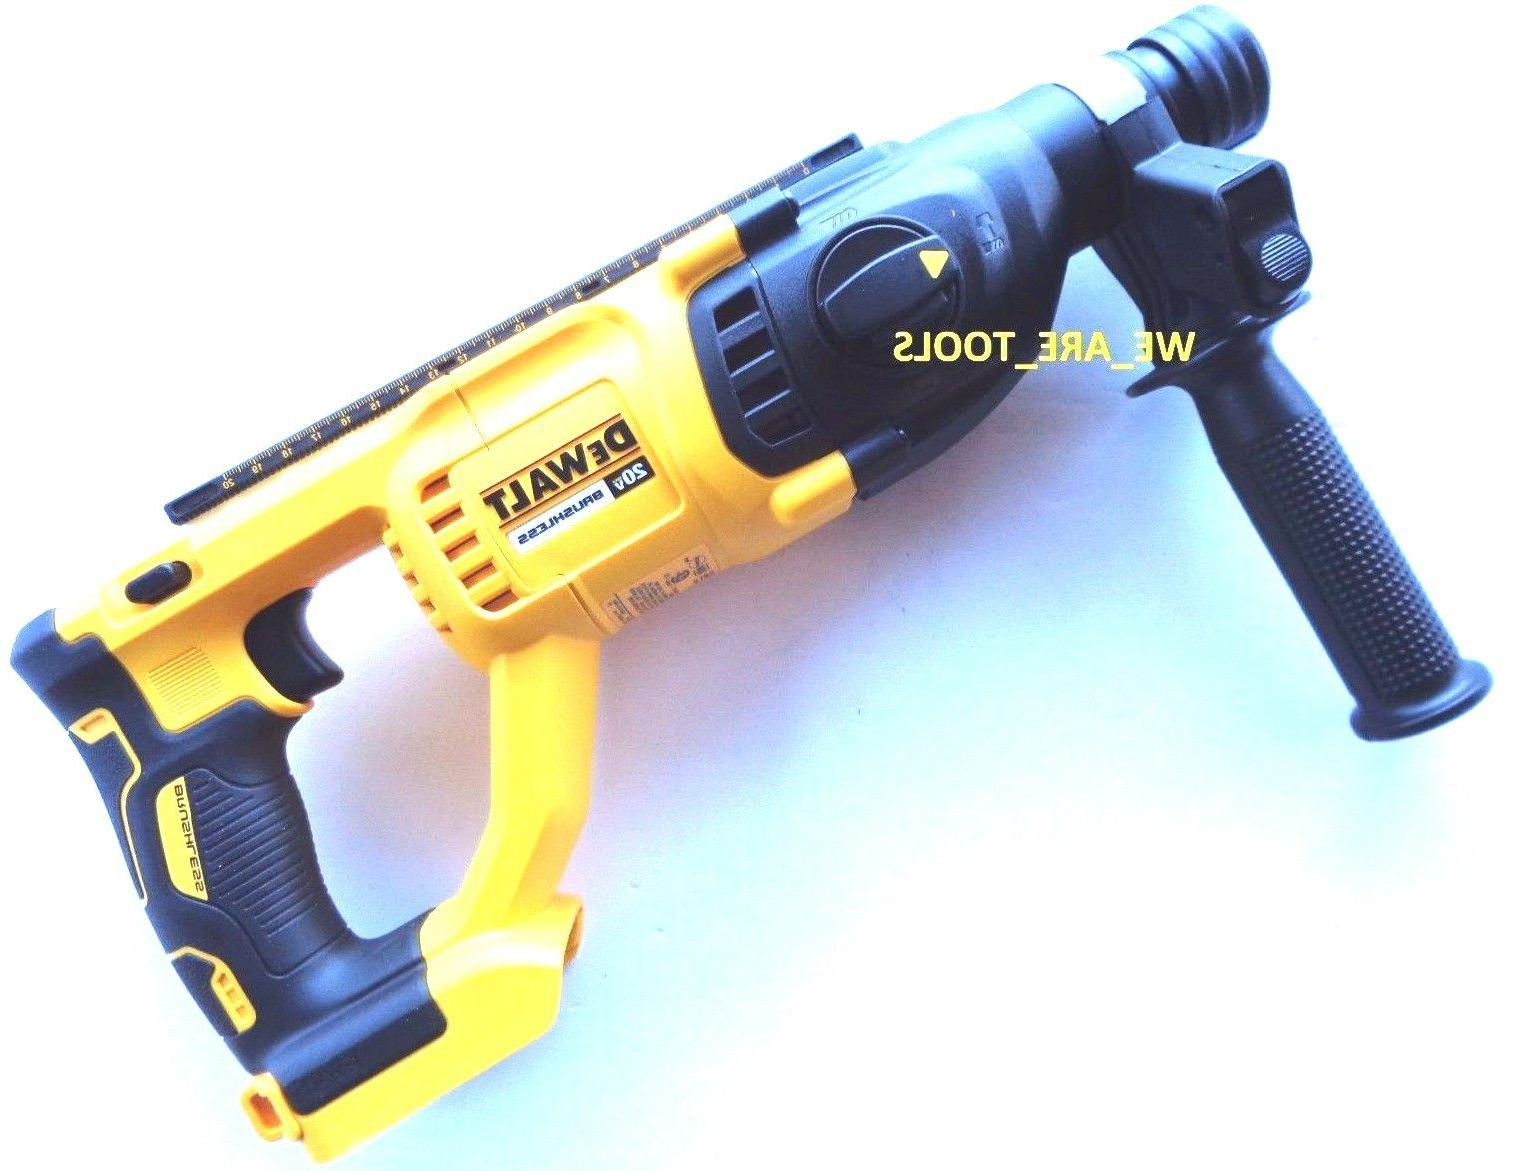 New Dewalt SDS Hammer Drill, DCB205 Battery 20 Volt